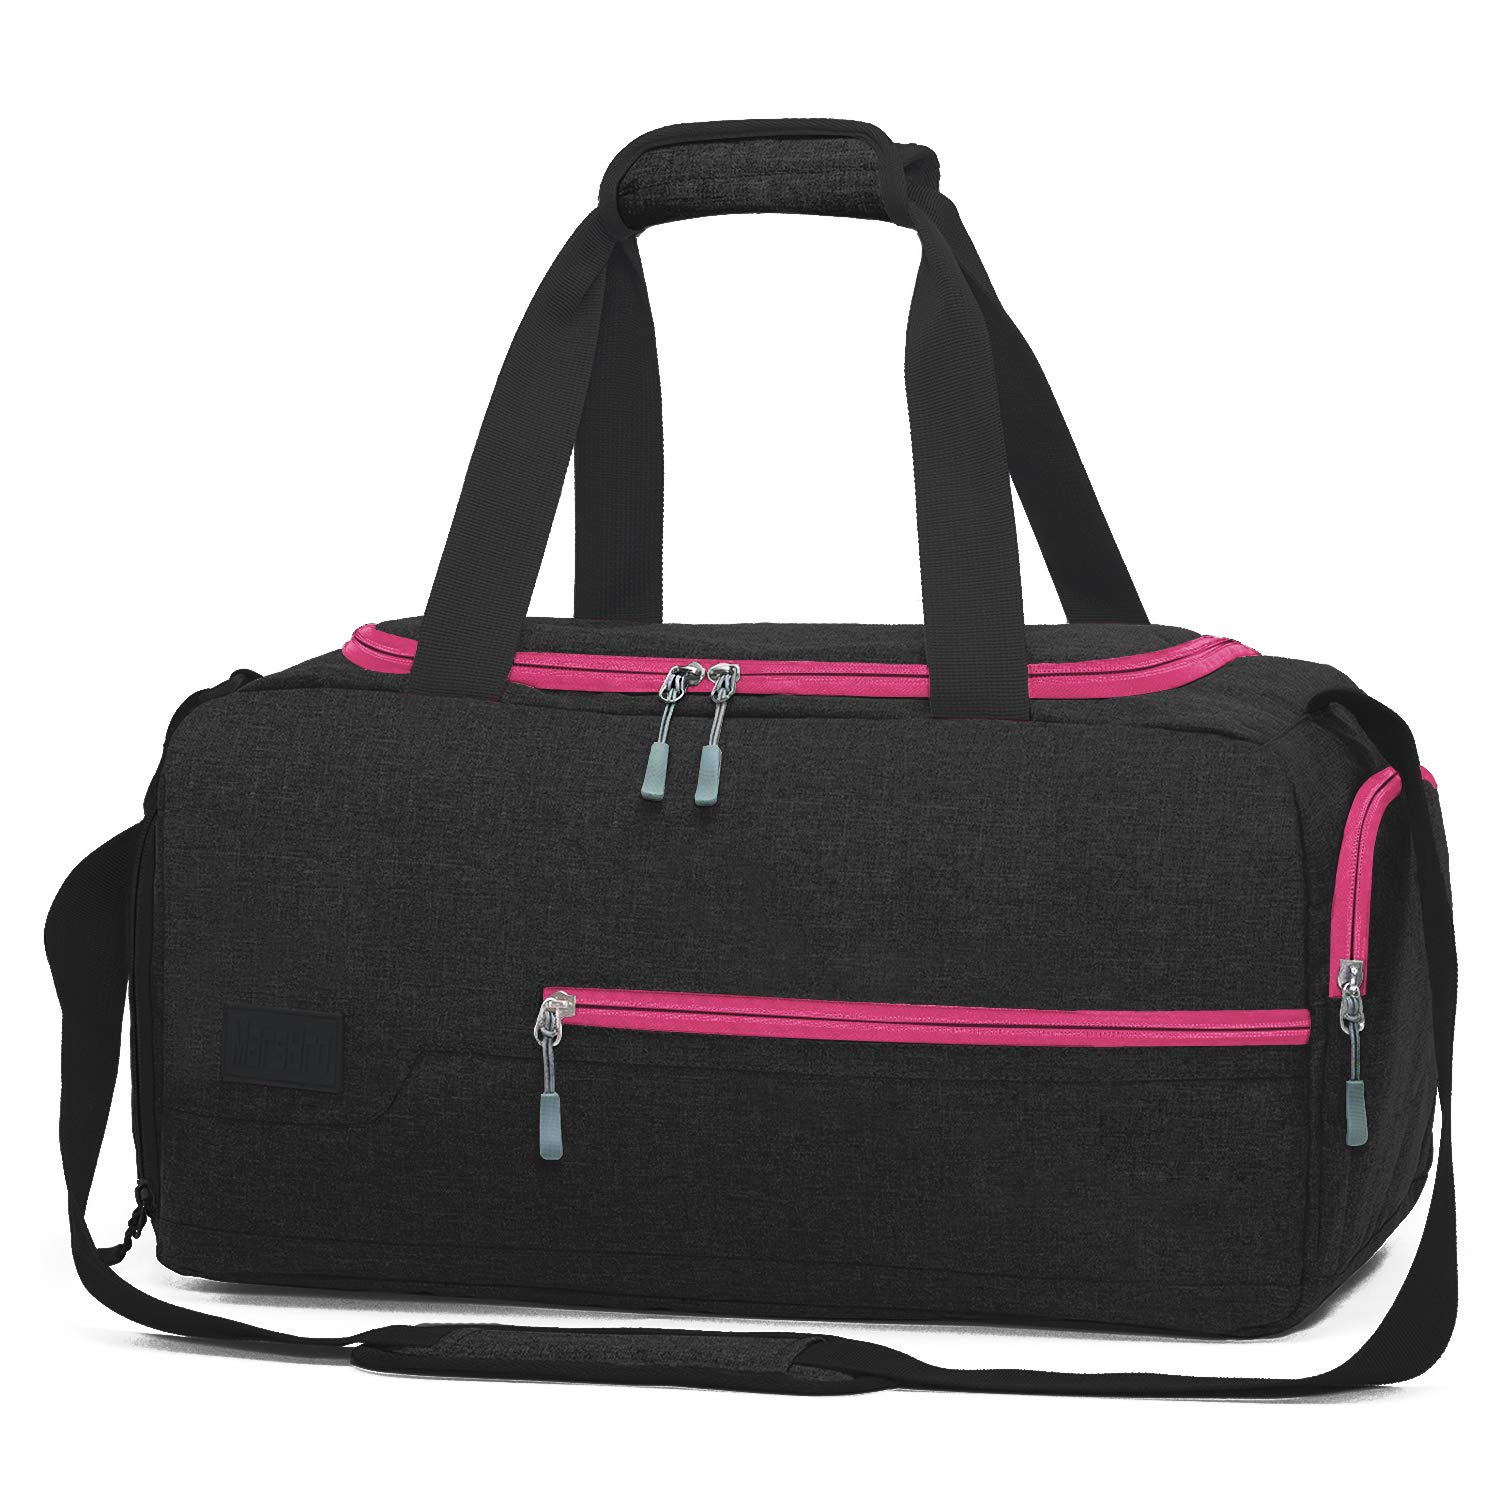 MarsBro Water Resistant Sports Gym Travel Weekender Duffel Bag with Shoe Compartment Black/Rose